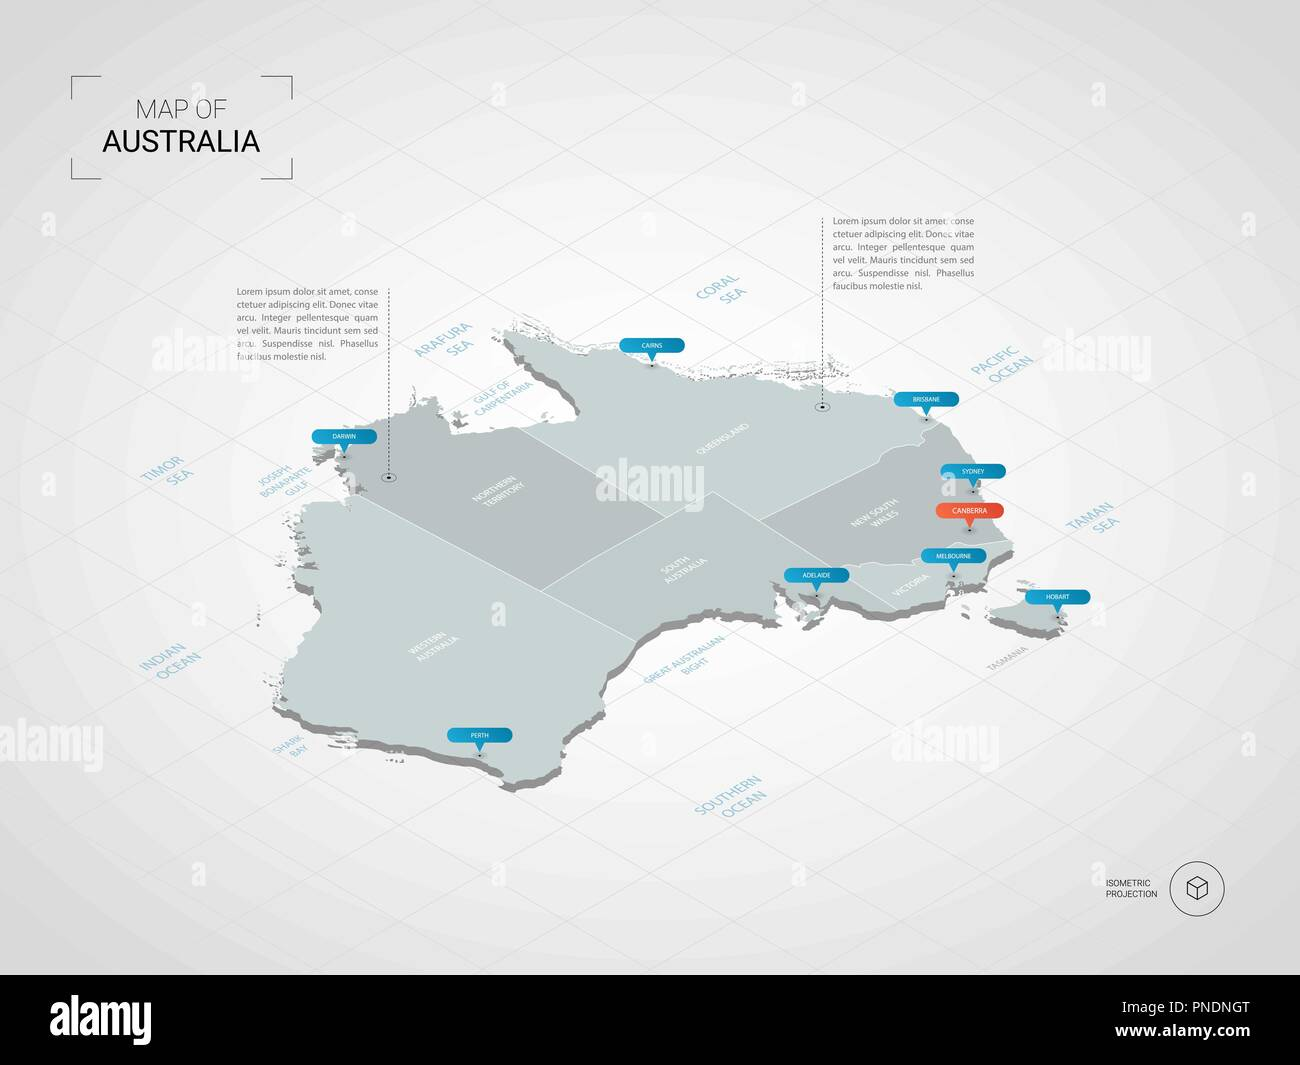 Map Of Australia And Cities.Australia Map Stock Photos Australia Map Stock Images Alamy